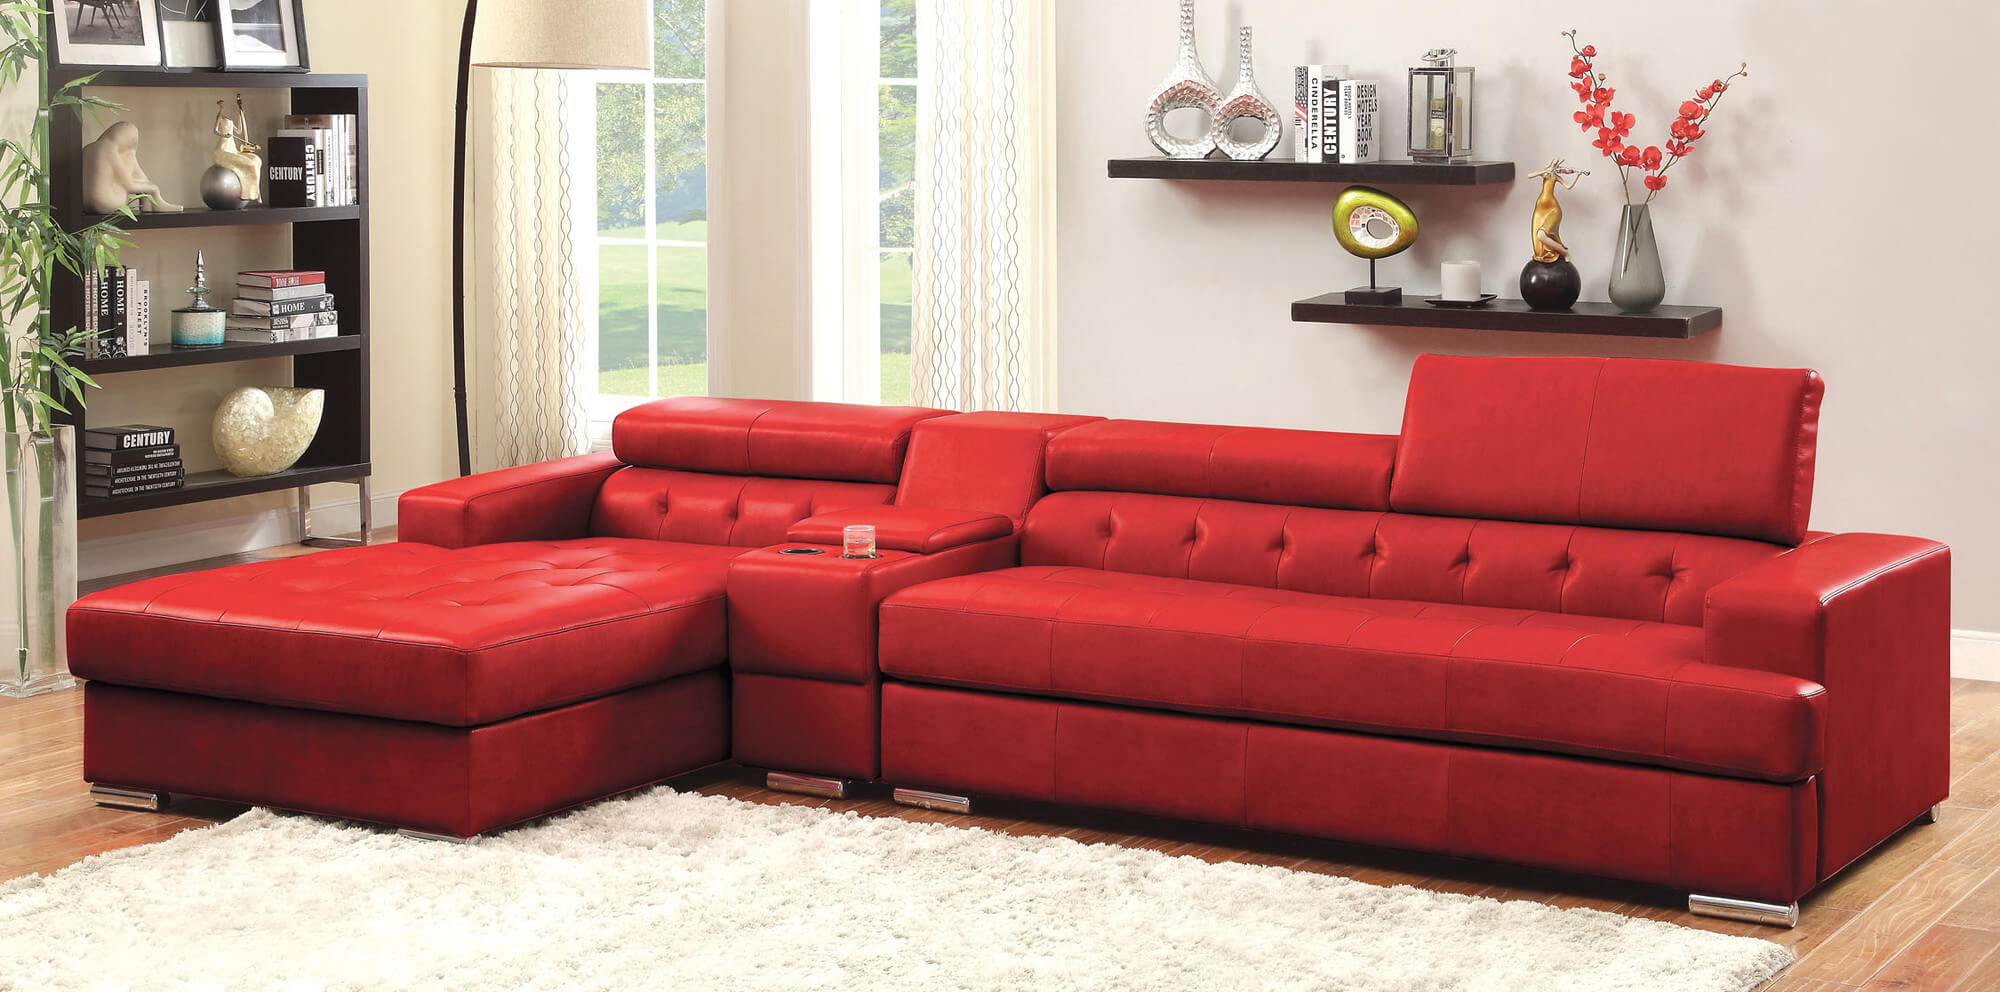 red sectional sofa tan leather gumtree sydney  roselawnlutheran